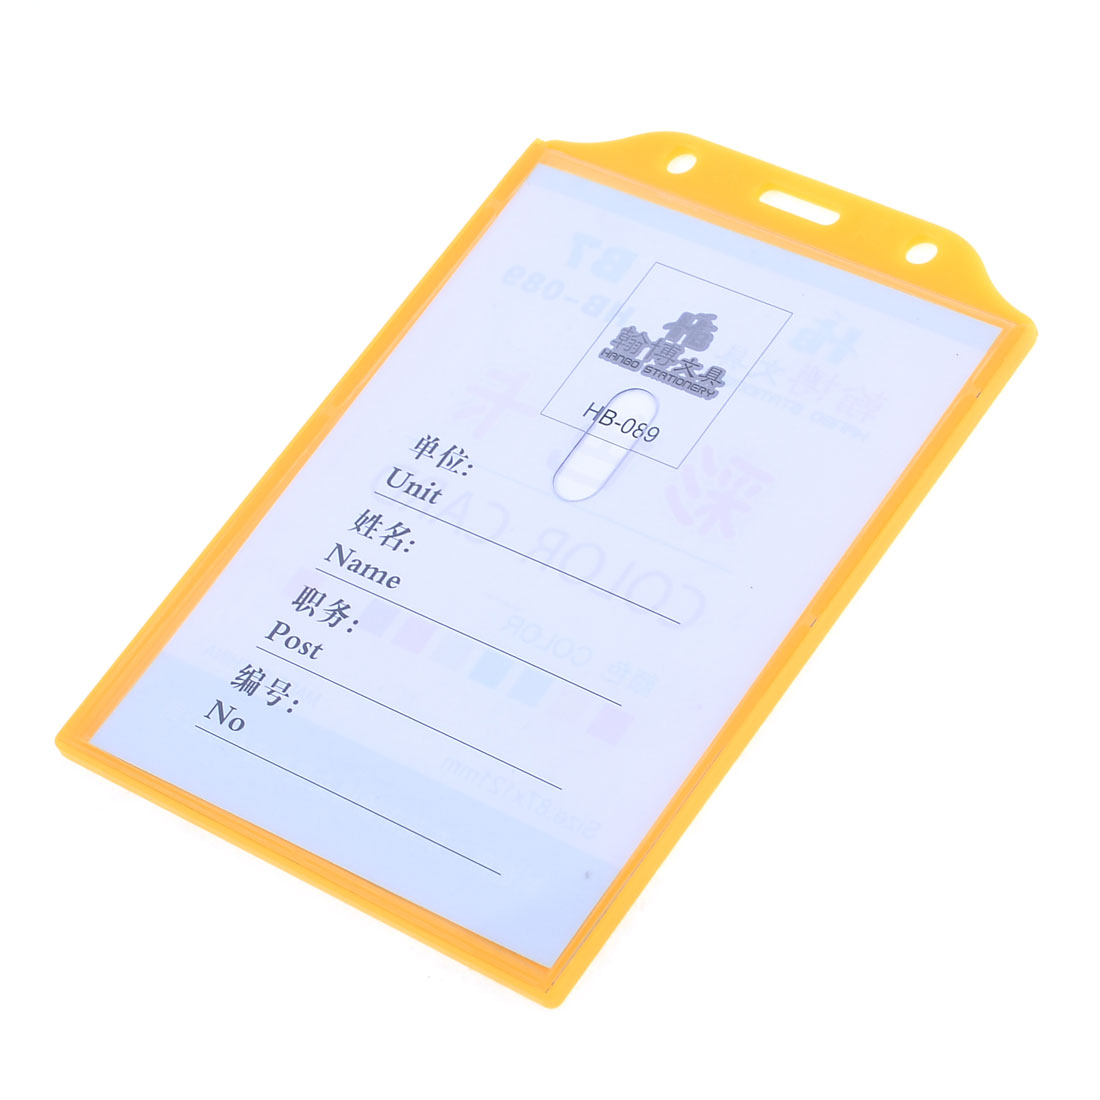 Orange Retangle Plastic Fit Card Size 11.9 x 8.8cm Work Cards Holder